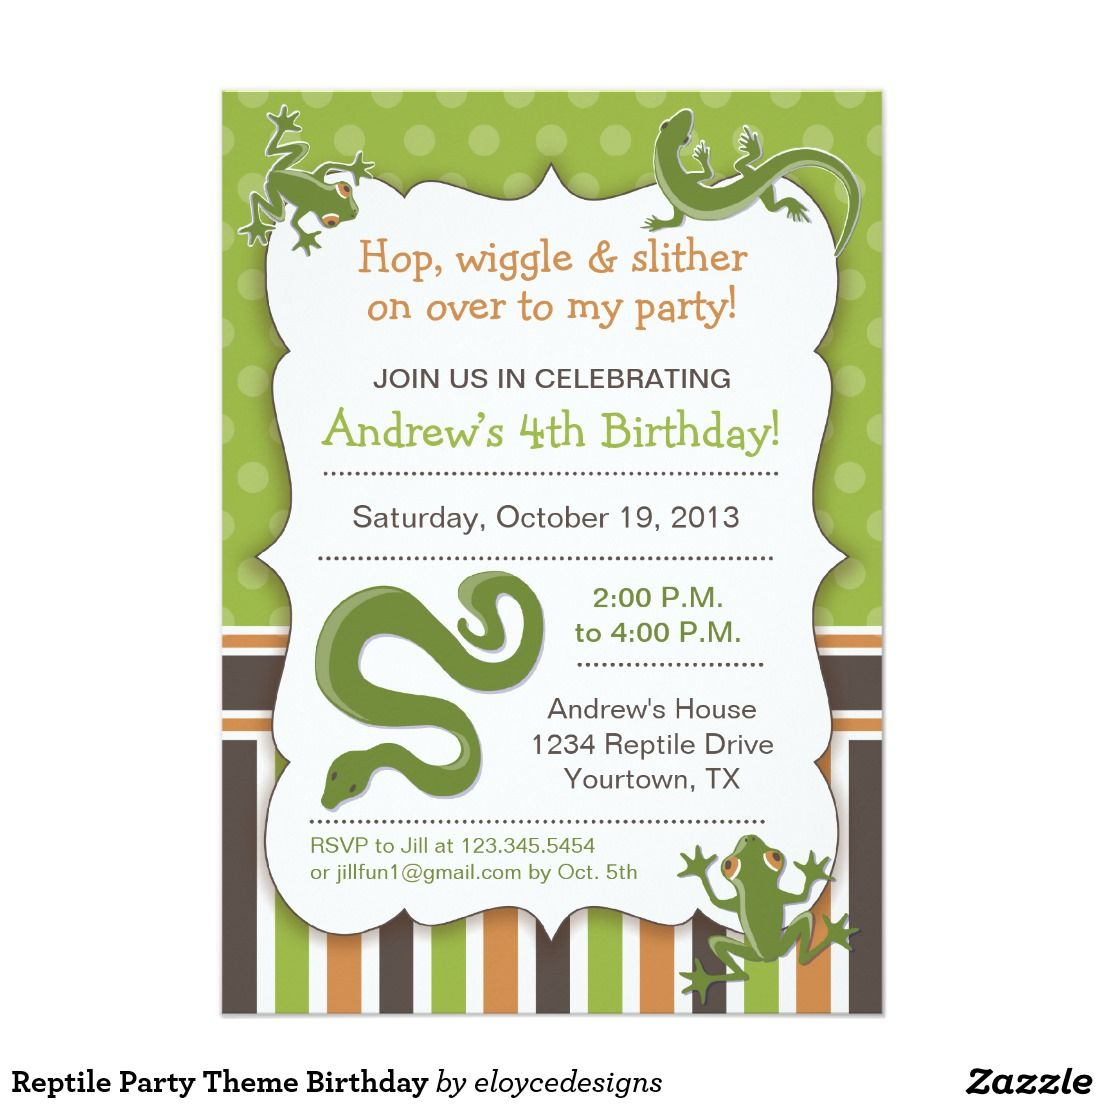 Reptile Party Theme Birthday Invitation Zazzle Com Boys